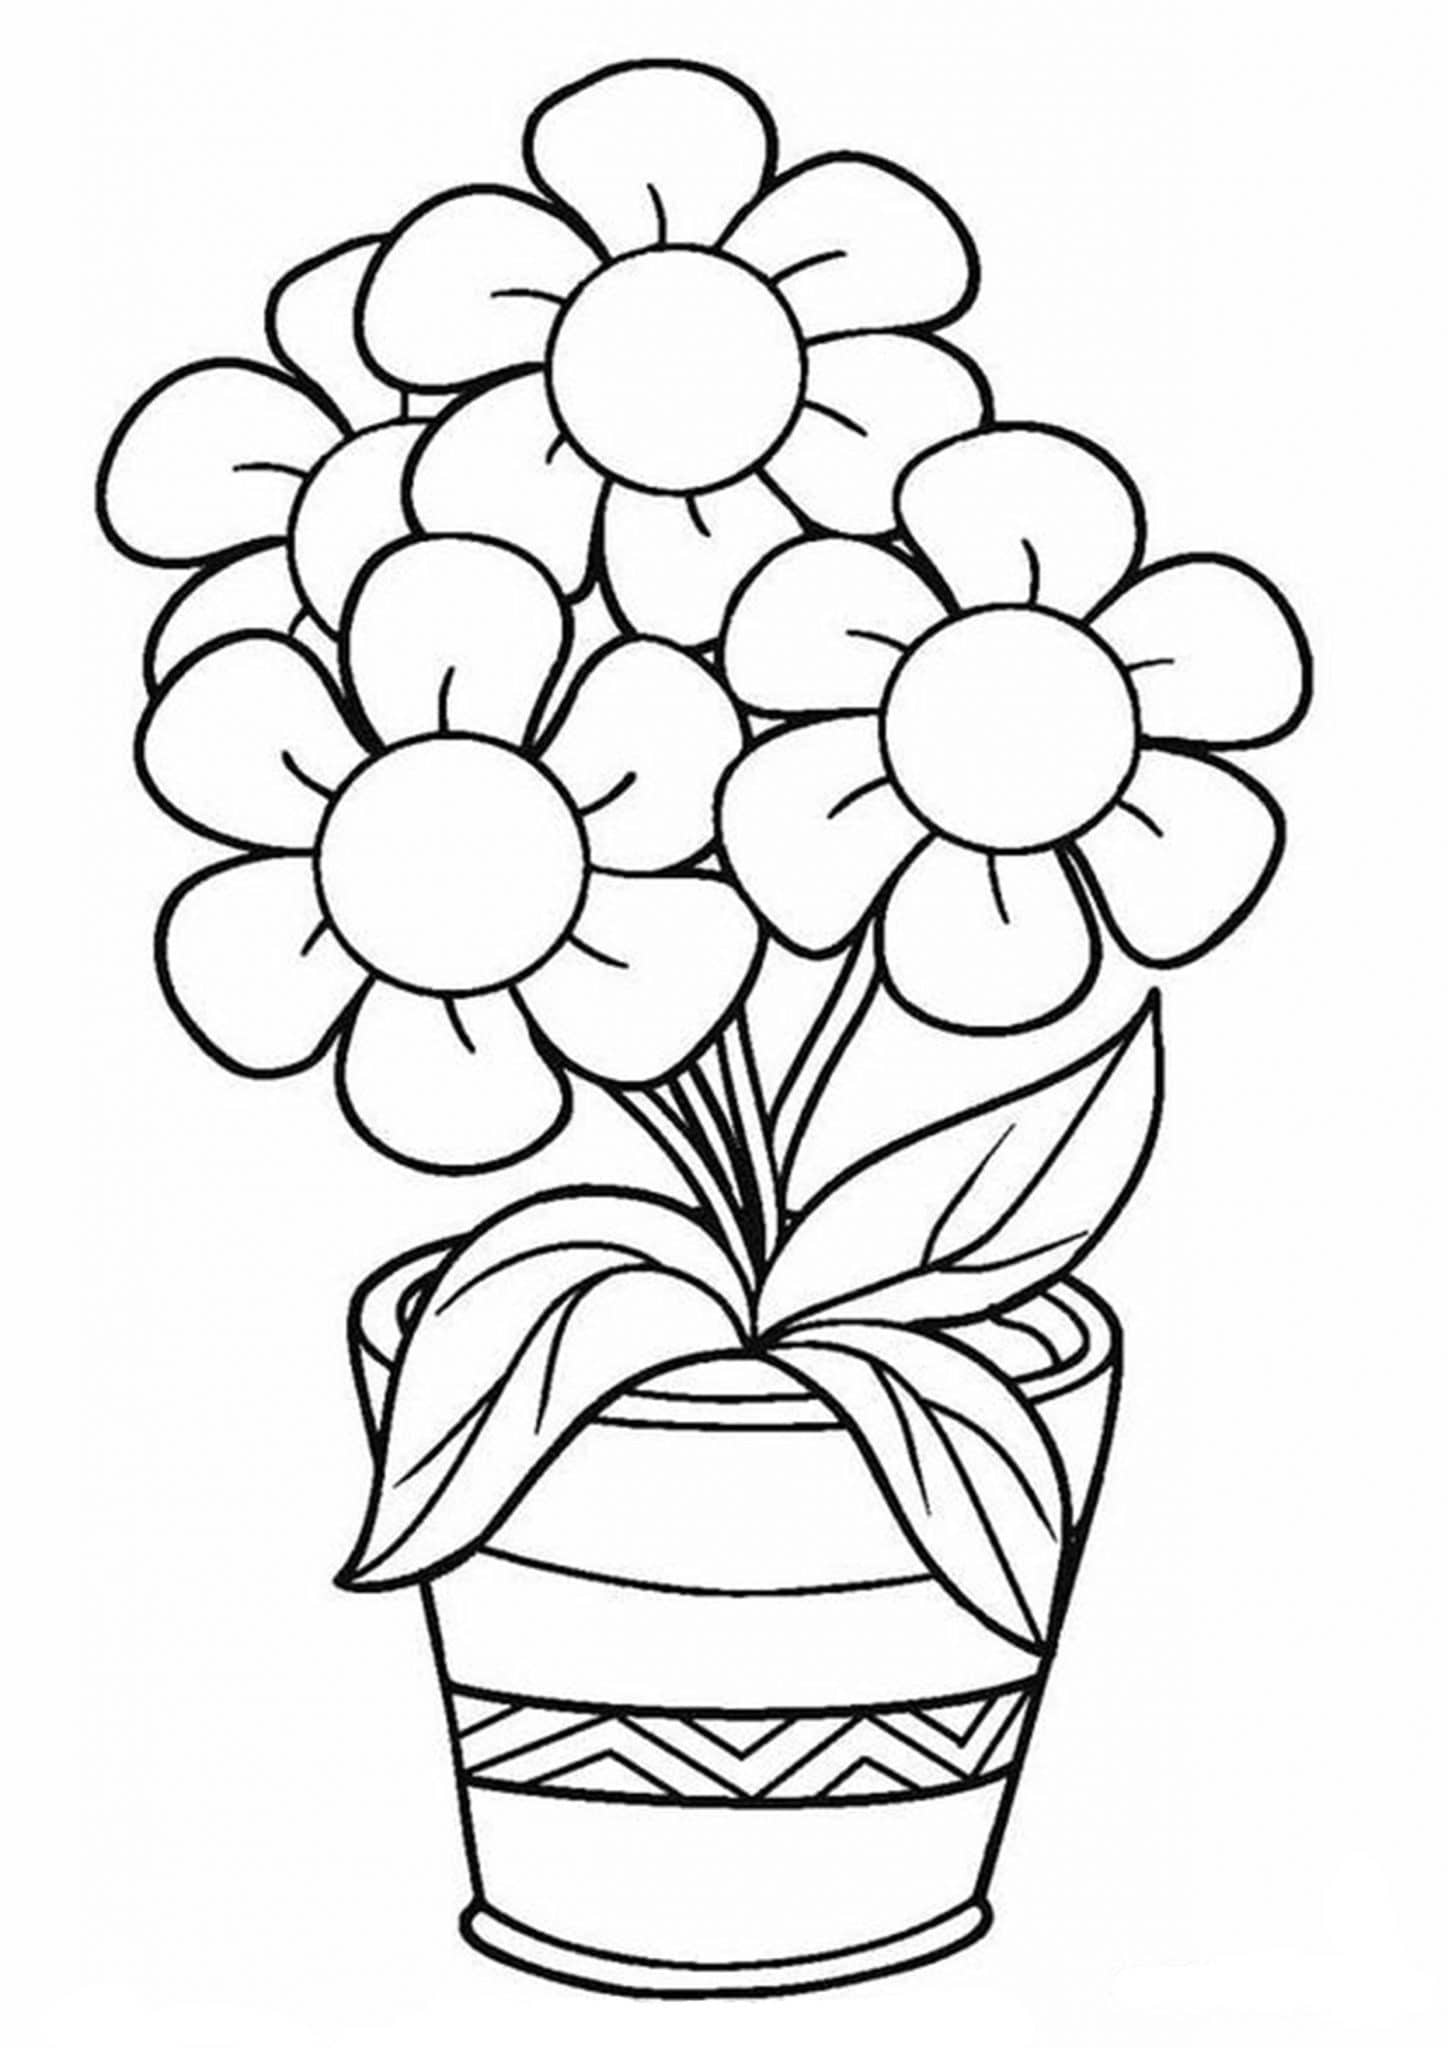 pictures of flowers to color free printables 10 flower coloring sheets for girls and boys all esl to printables flowers pictures color free of